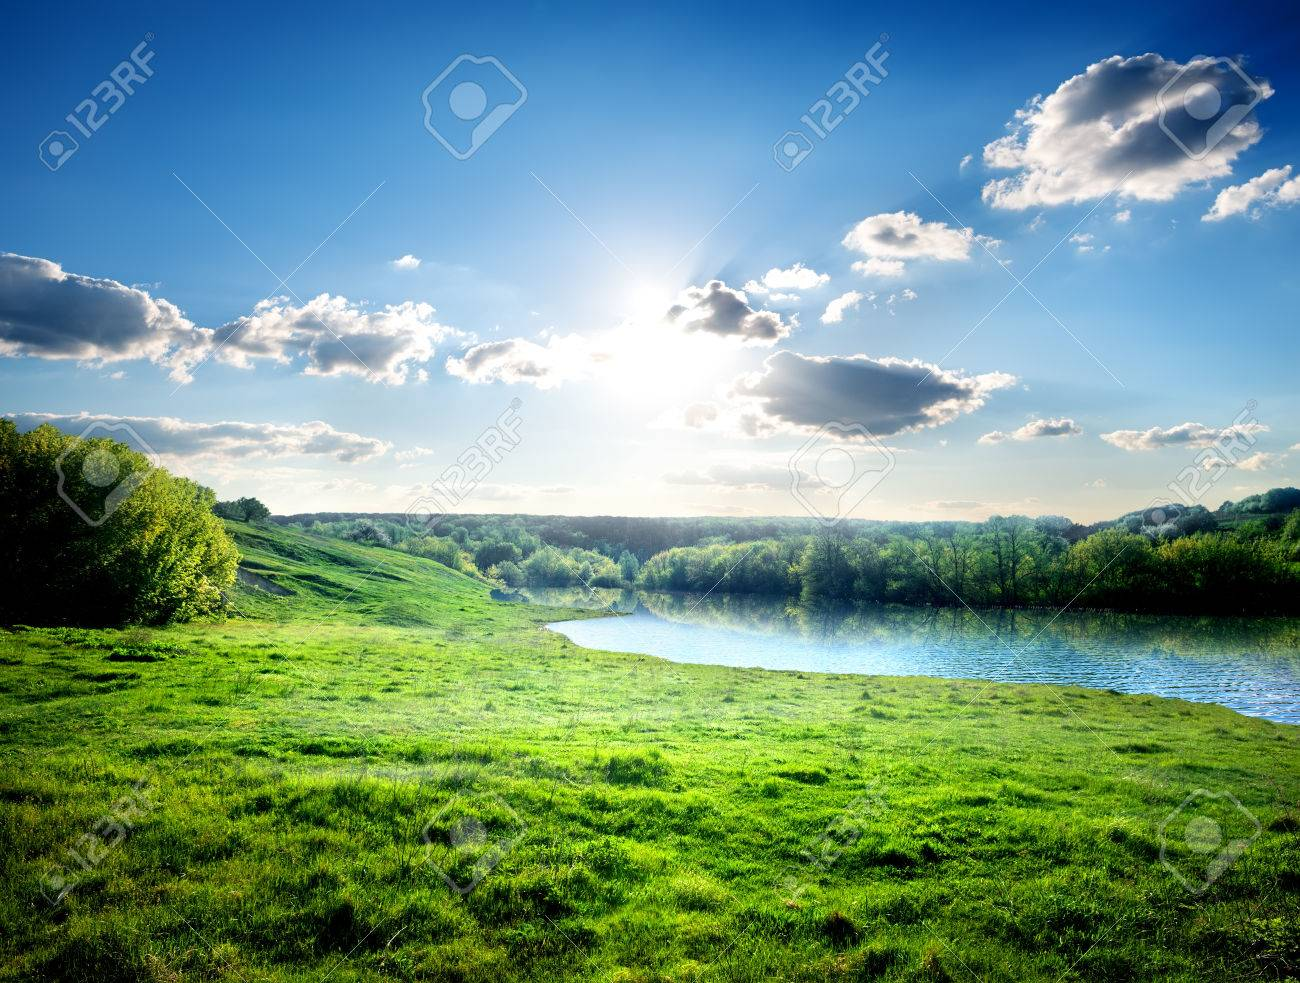 Green lawn near river in the forest - 35066420